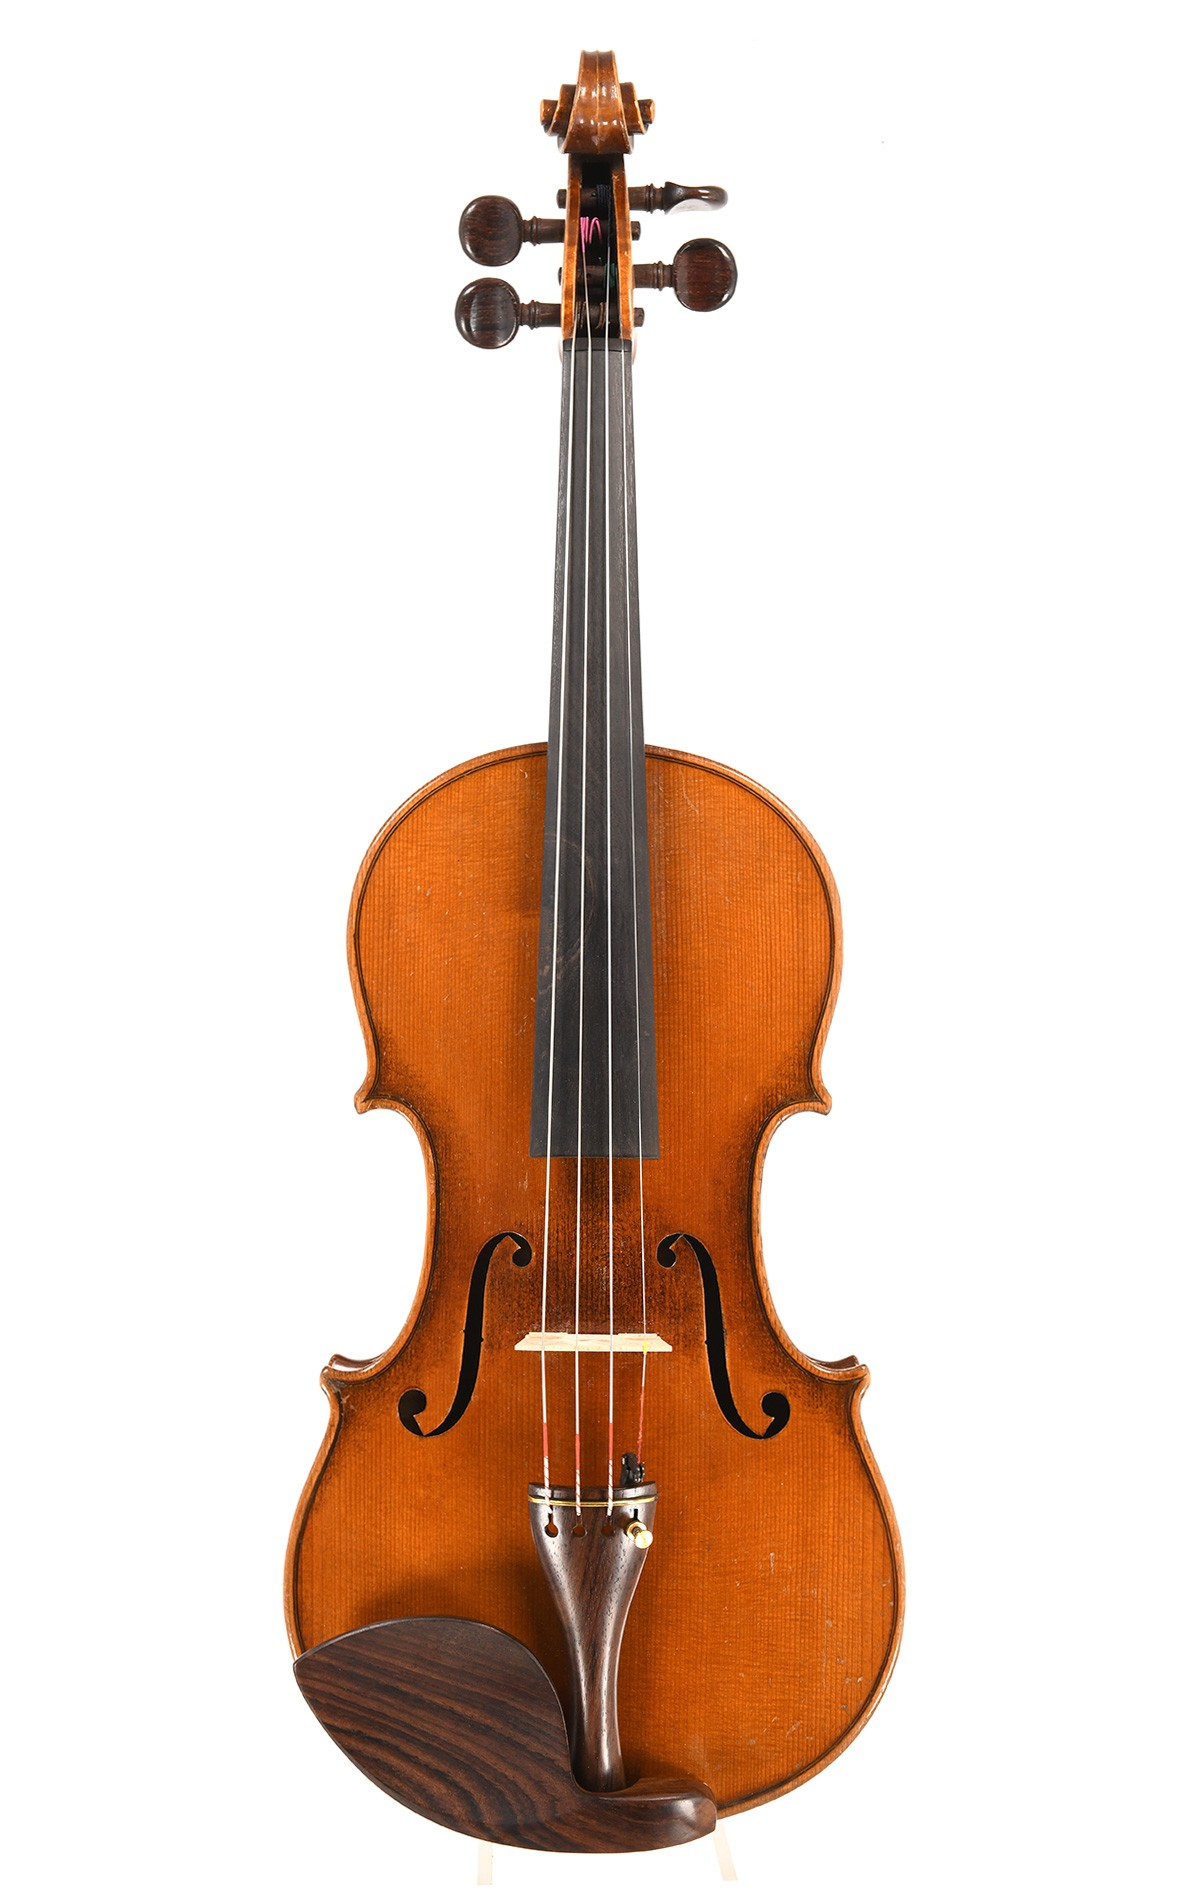 Old Markneukirchen violin by Schuster & Co.